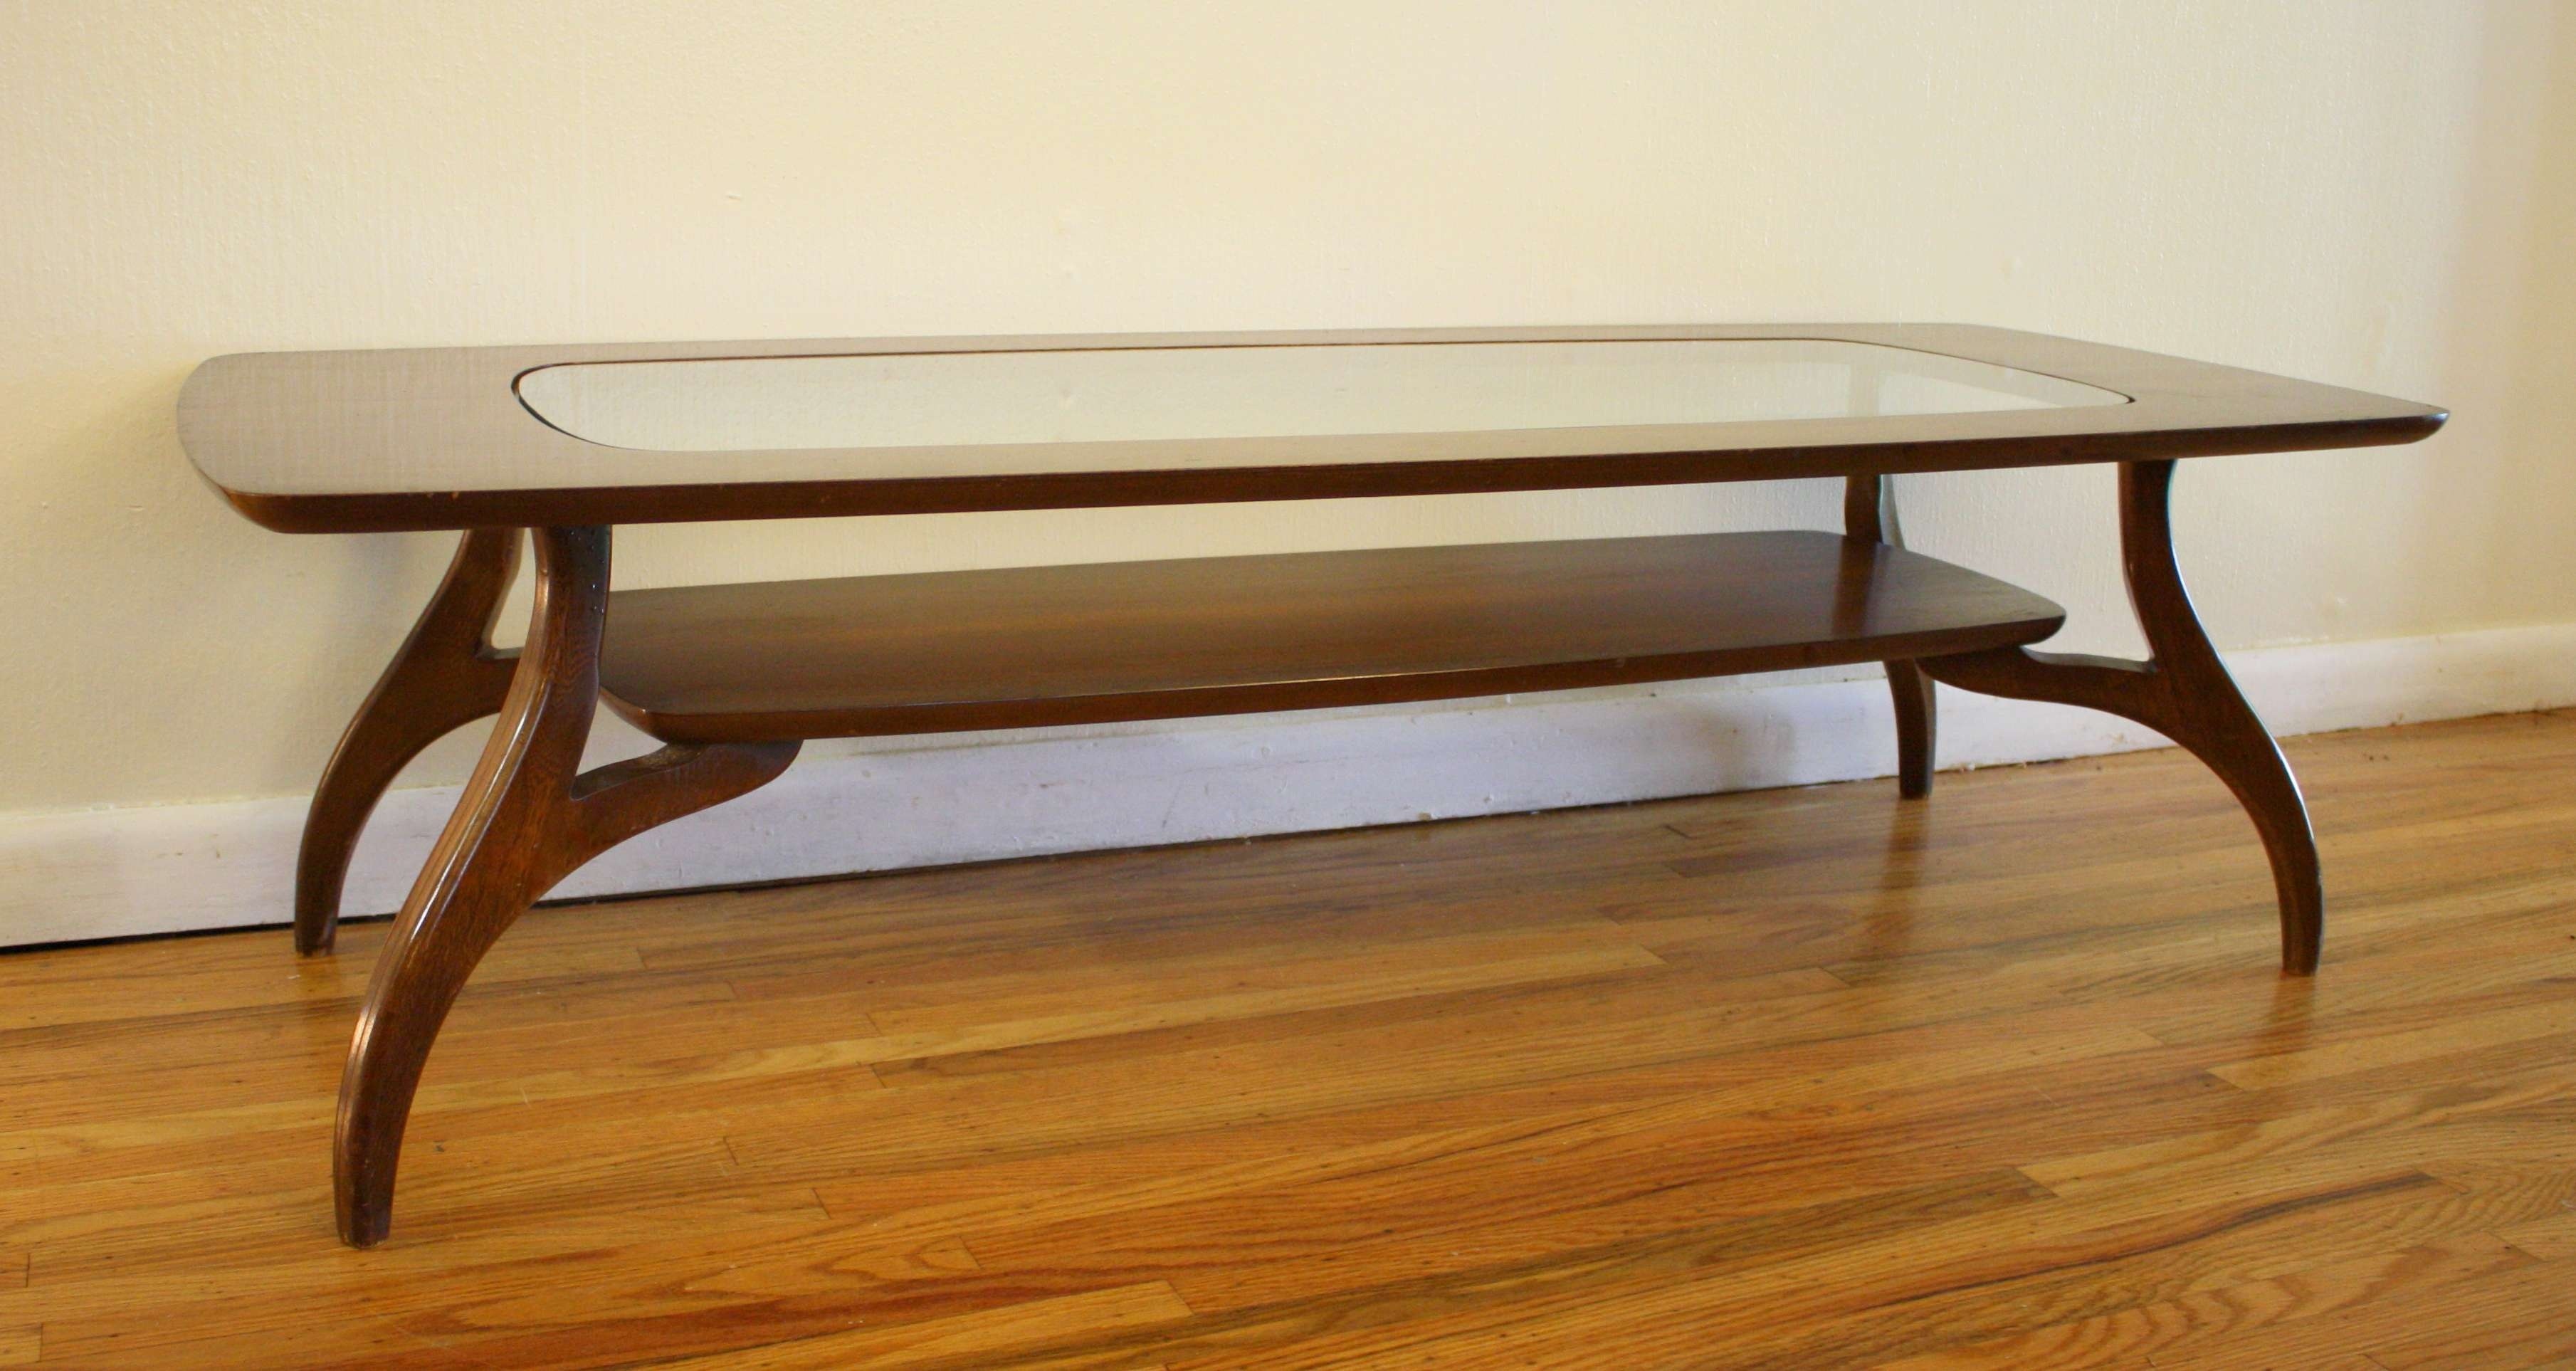 Picked Vintage Intended For Popular Vintage Glass Top Coffee Tables (View 10 of 20)